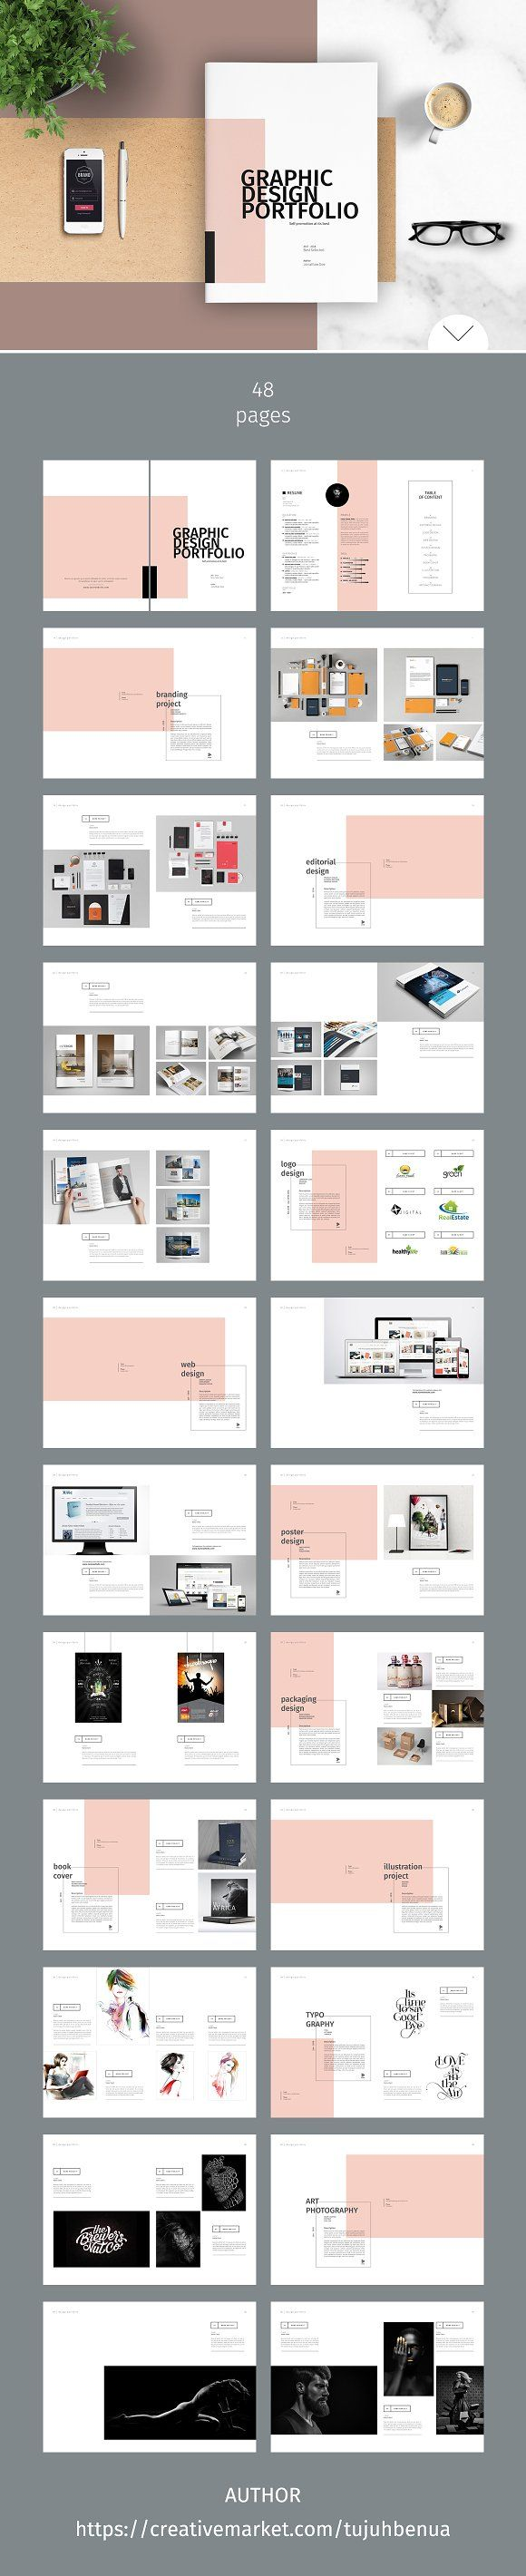 Best 25+ Graphic design portfolios ideas on Pinterest